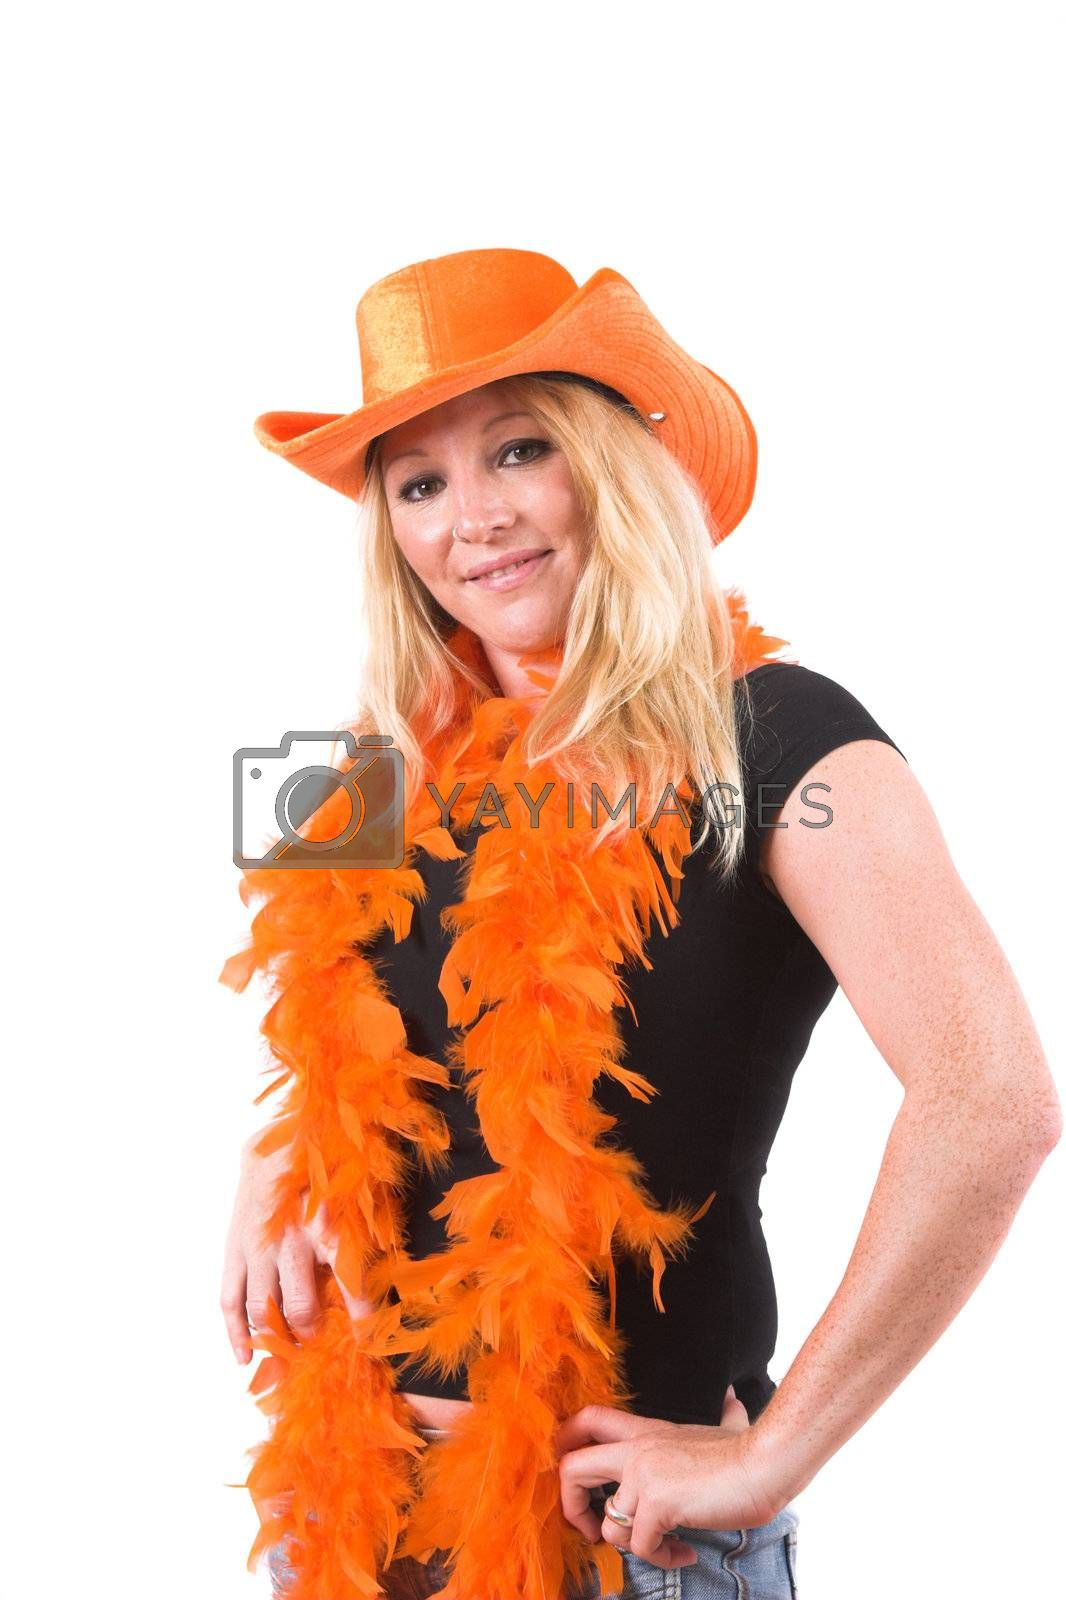 Pretty blond woman with orange hat and orange featherboa, ready to celebrate the worldcup football